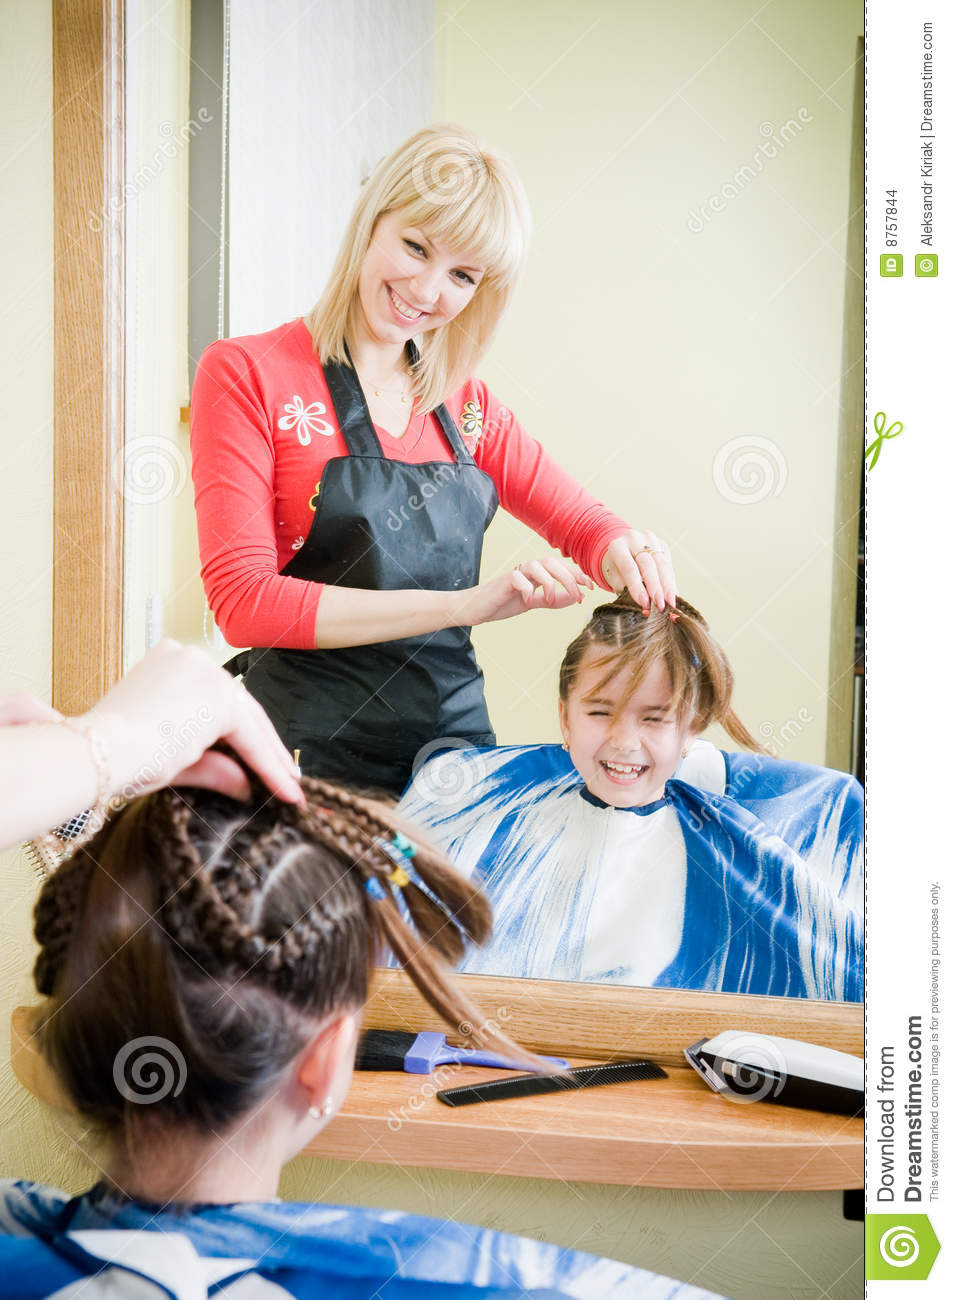 Cute Little Girl Getting Her New Haircut Stock Photo